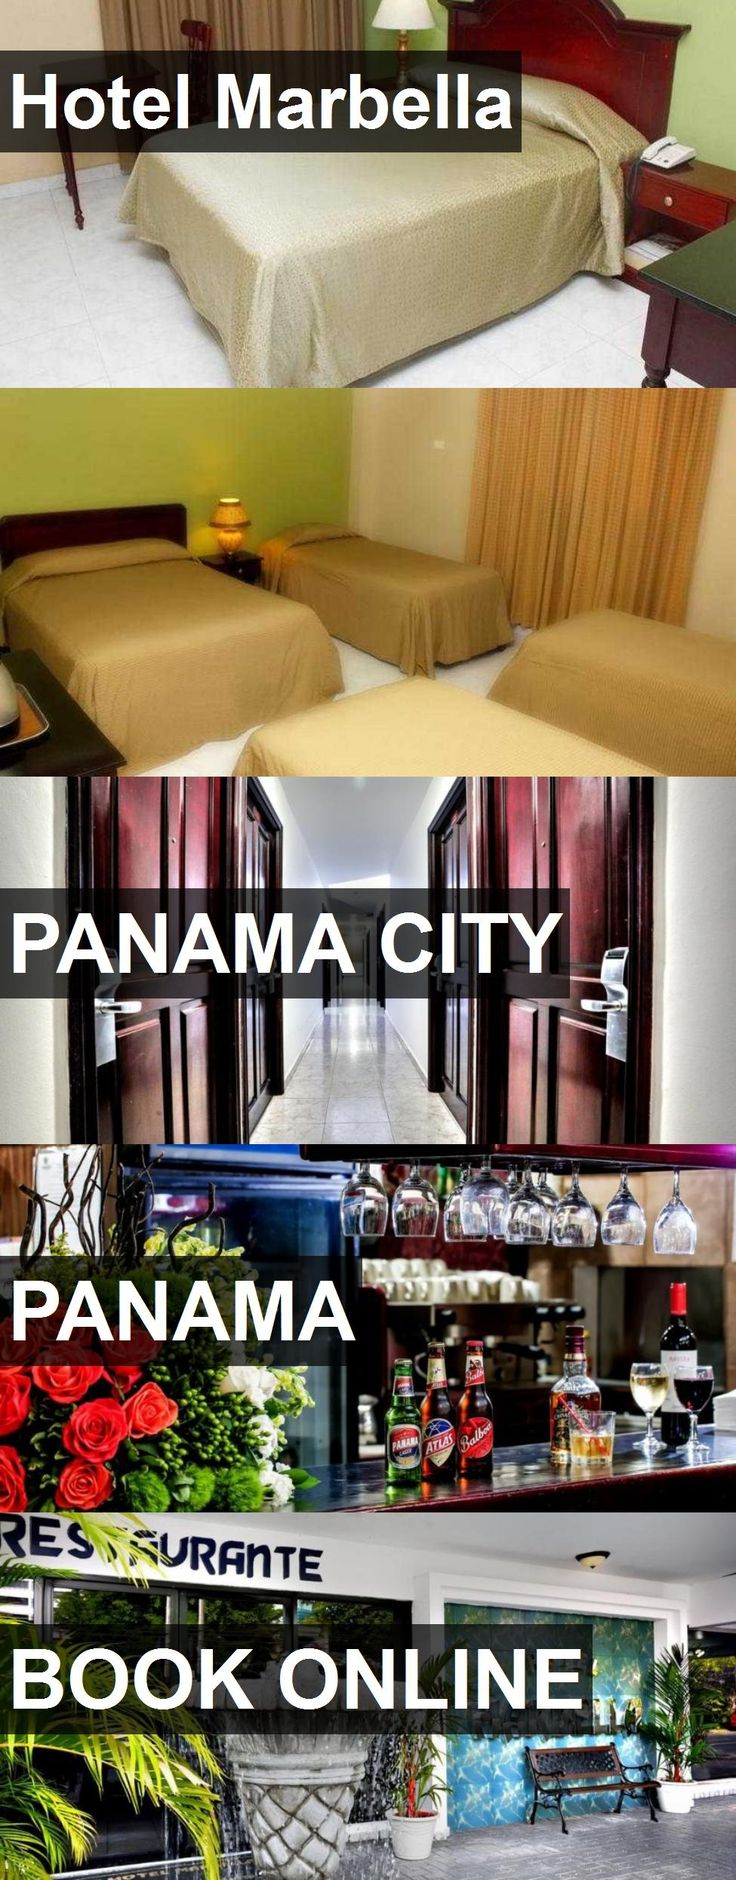 Hotel Hotel Marbella in Panama City, Panama. For more information, photos, reviews and best prices please follow the link. #Panama #PanamaCity #HotelMarbella #hotel #travel #vacation